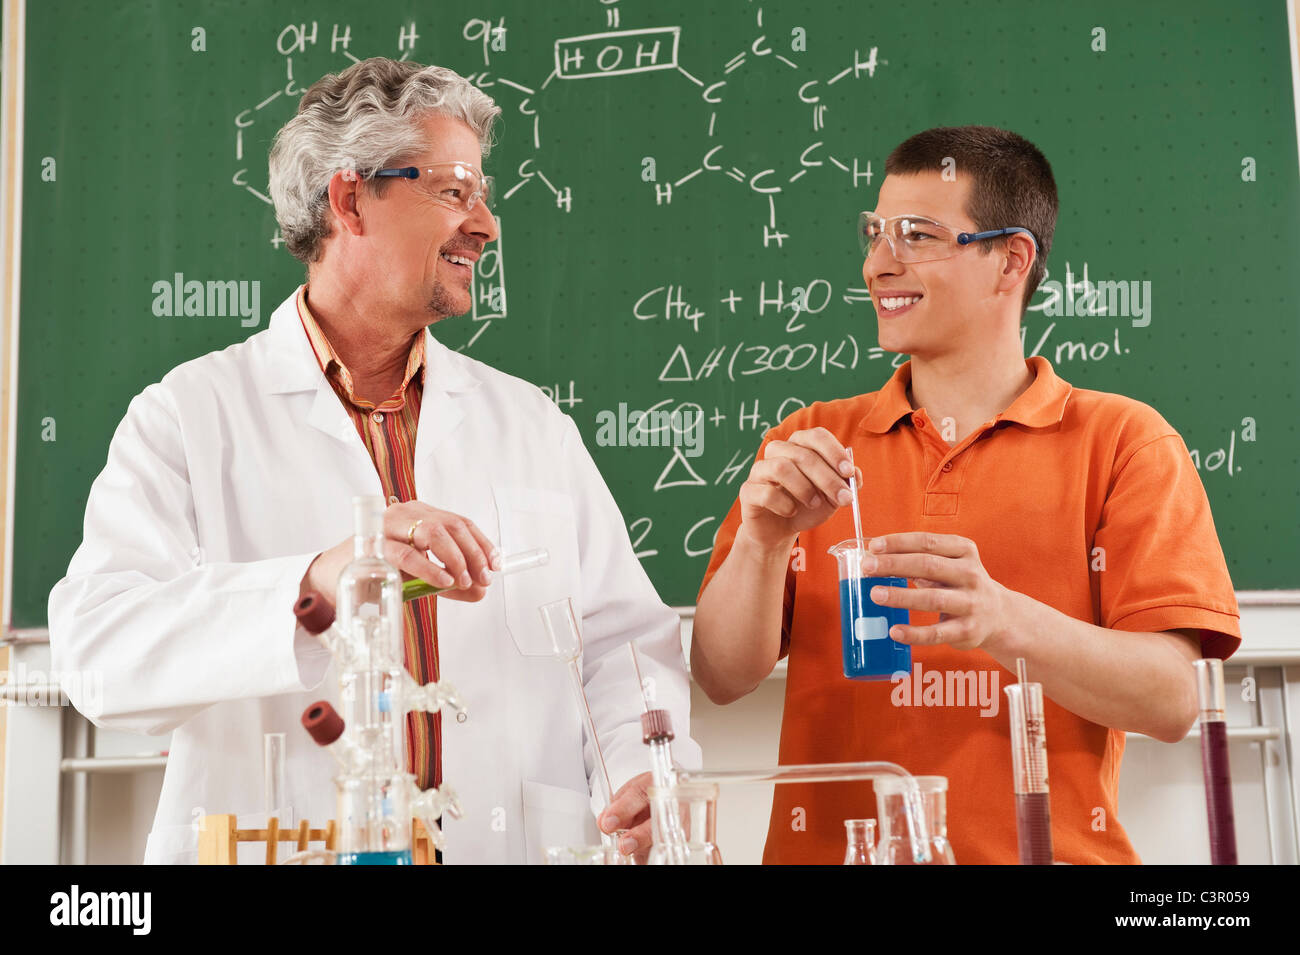 Germany, Emmering, Teacher and student doing experiment in chemistry class, smiling - Stock Image